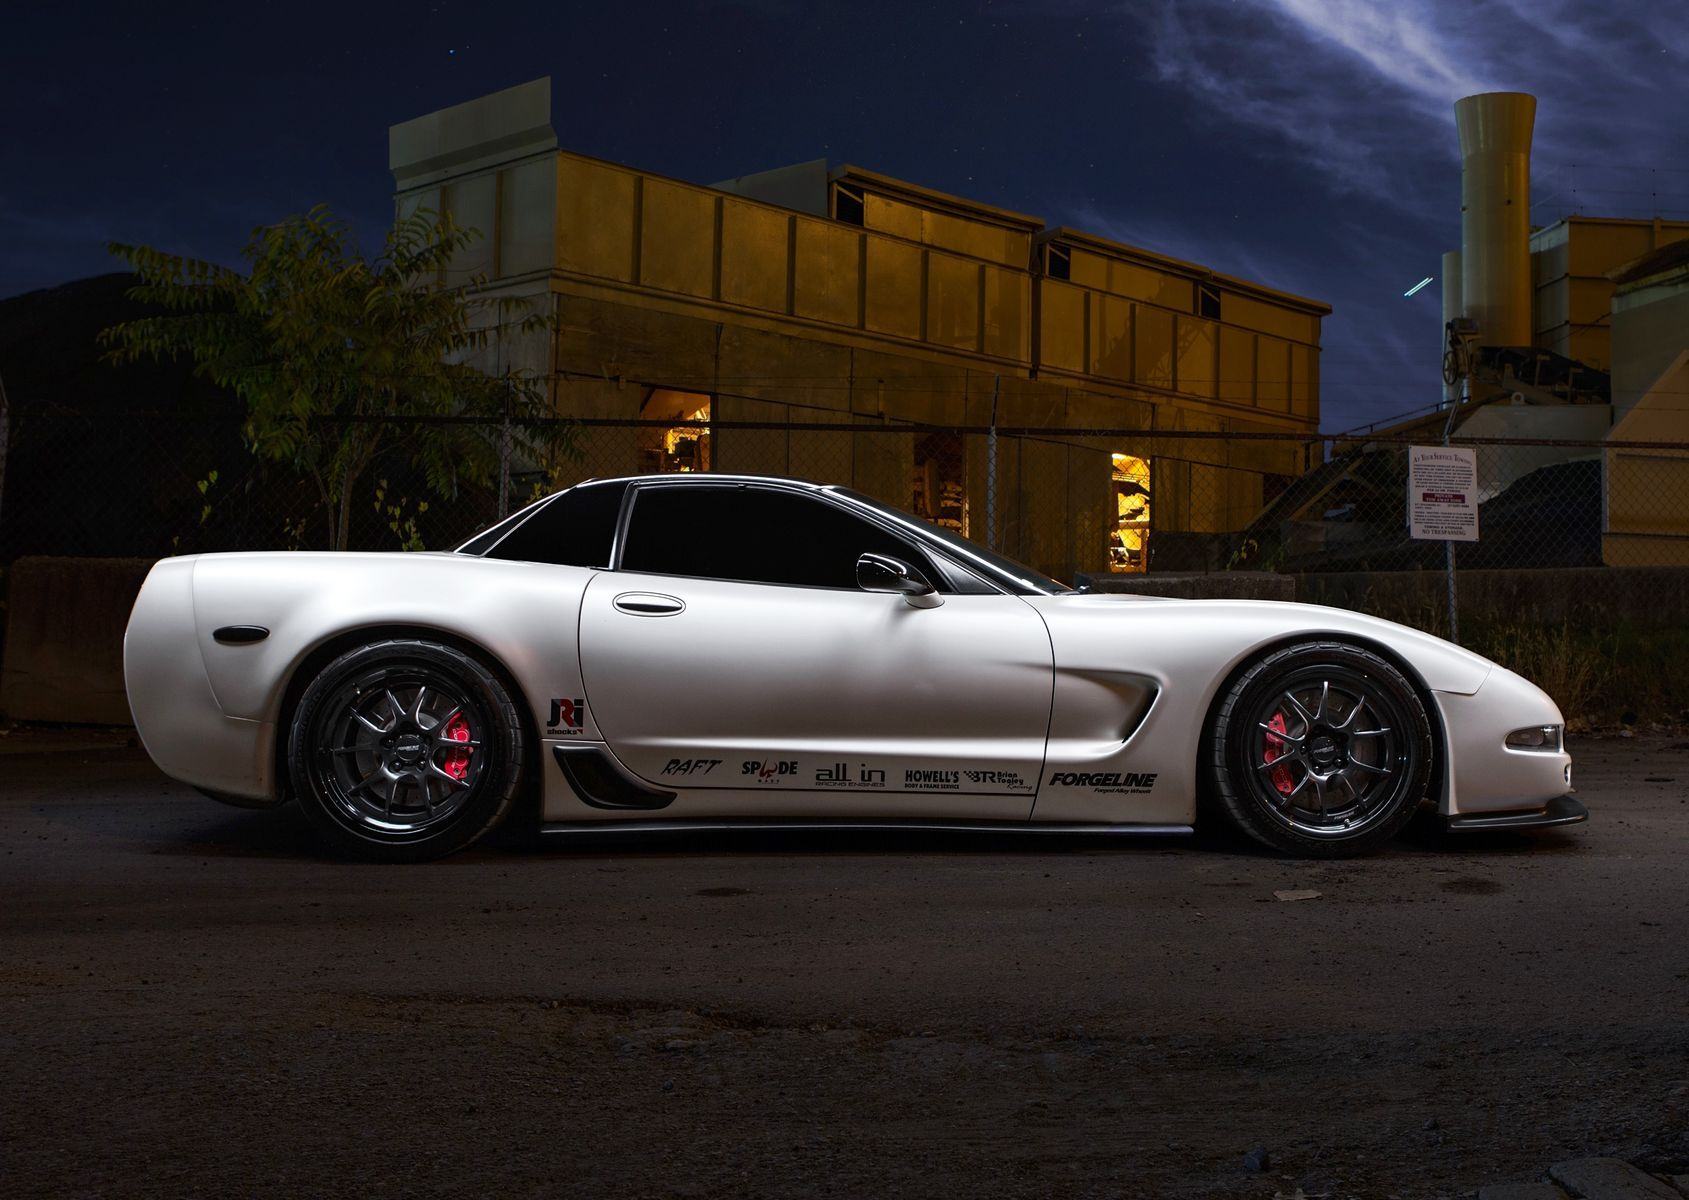 2003 Chevrolet Corvette Z06 | David Moster's C5 Corvette Z06 on Forgeline GA3R Wheels